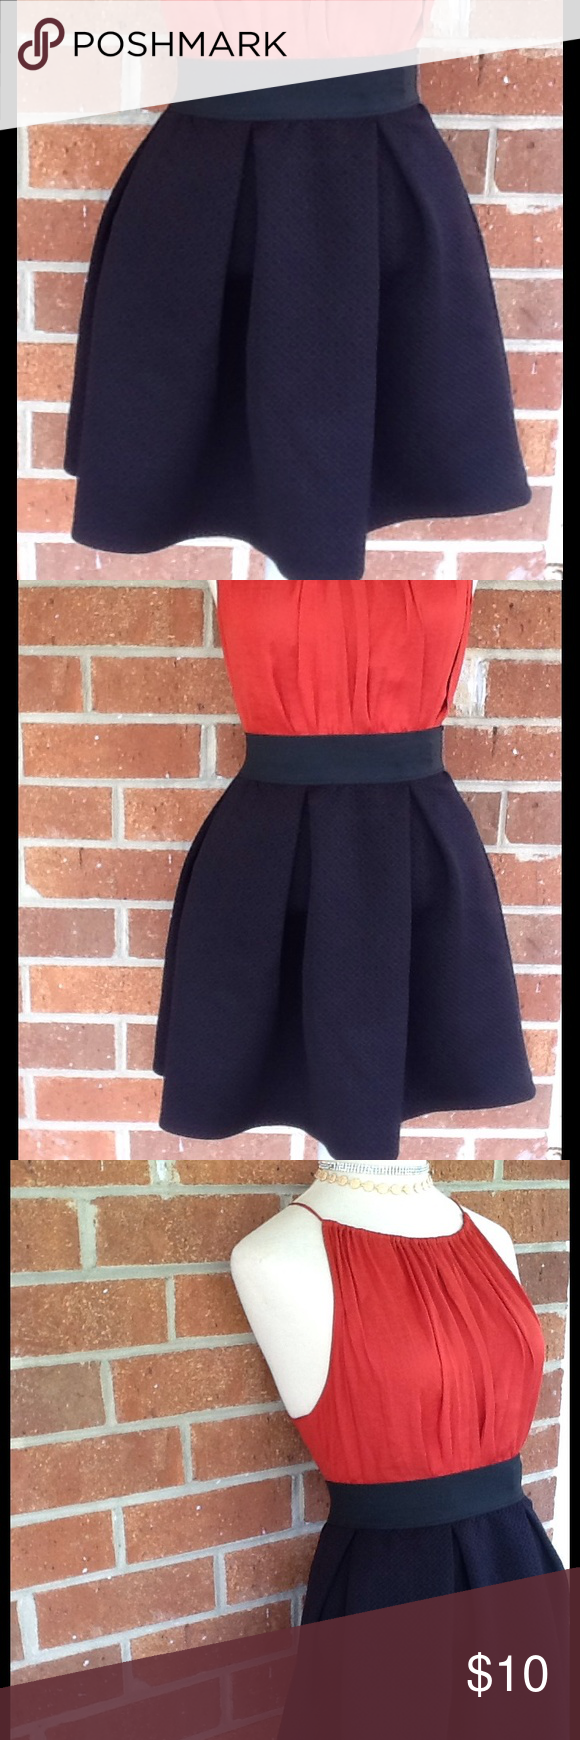 Joe B Diamond Print Skater Skirt Size Large Black Skater Skirt Amanda's Closet Skirts Circle & Skater